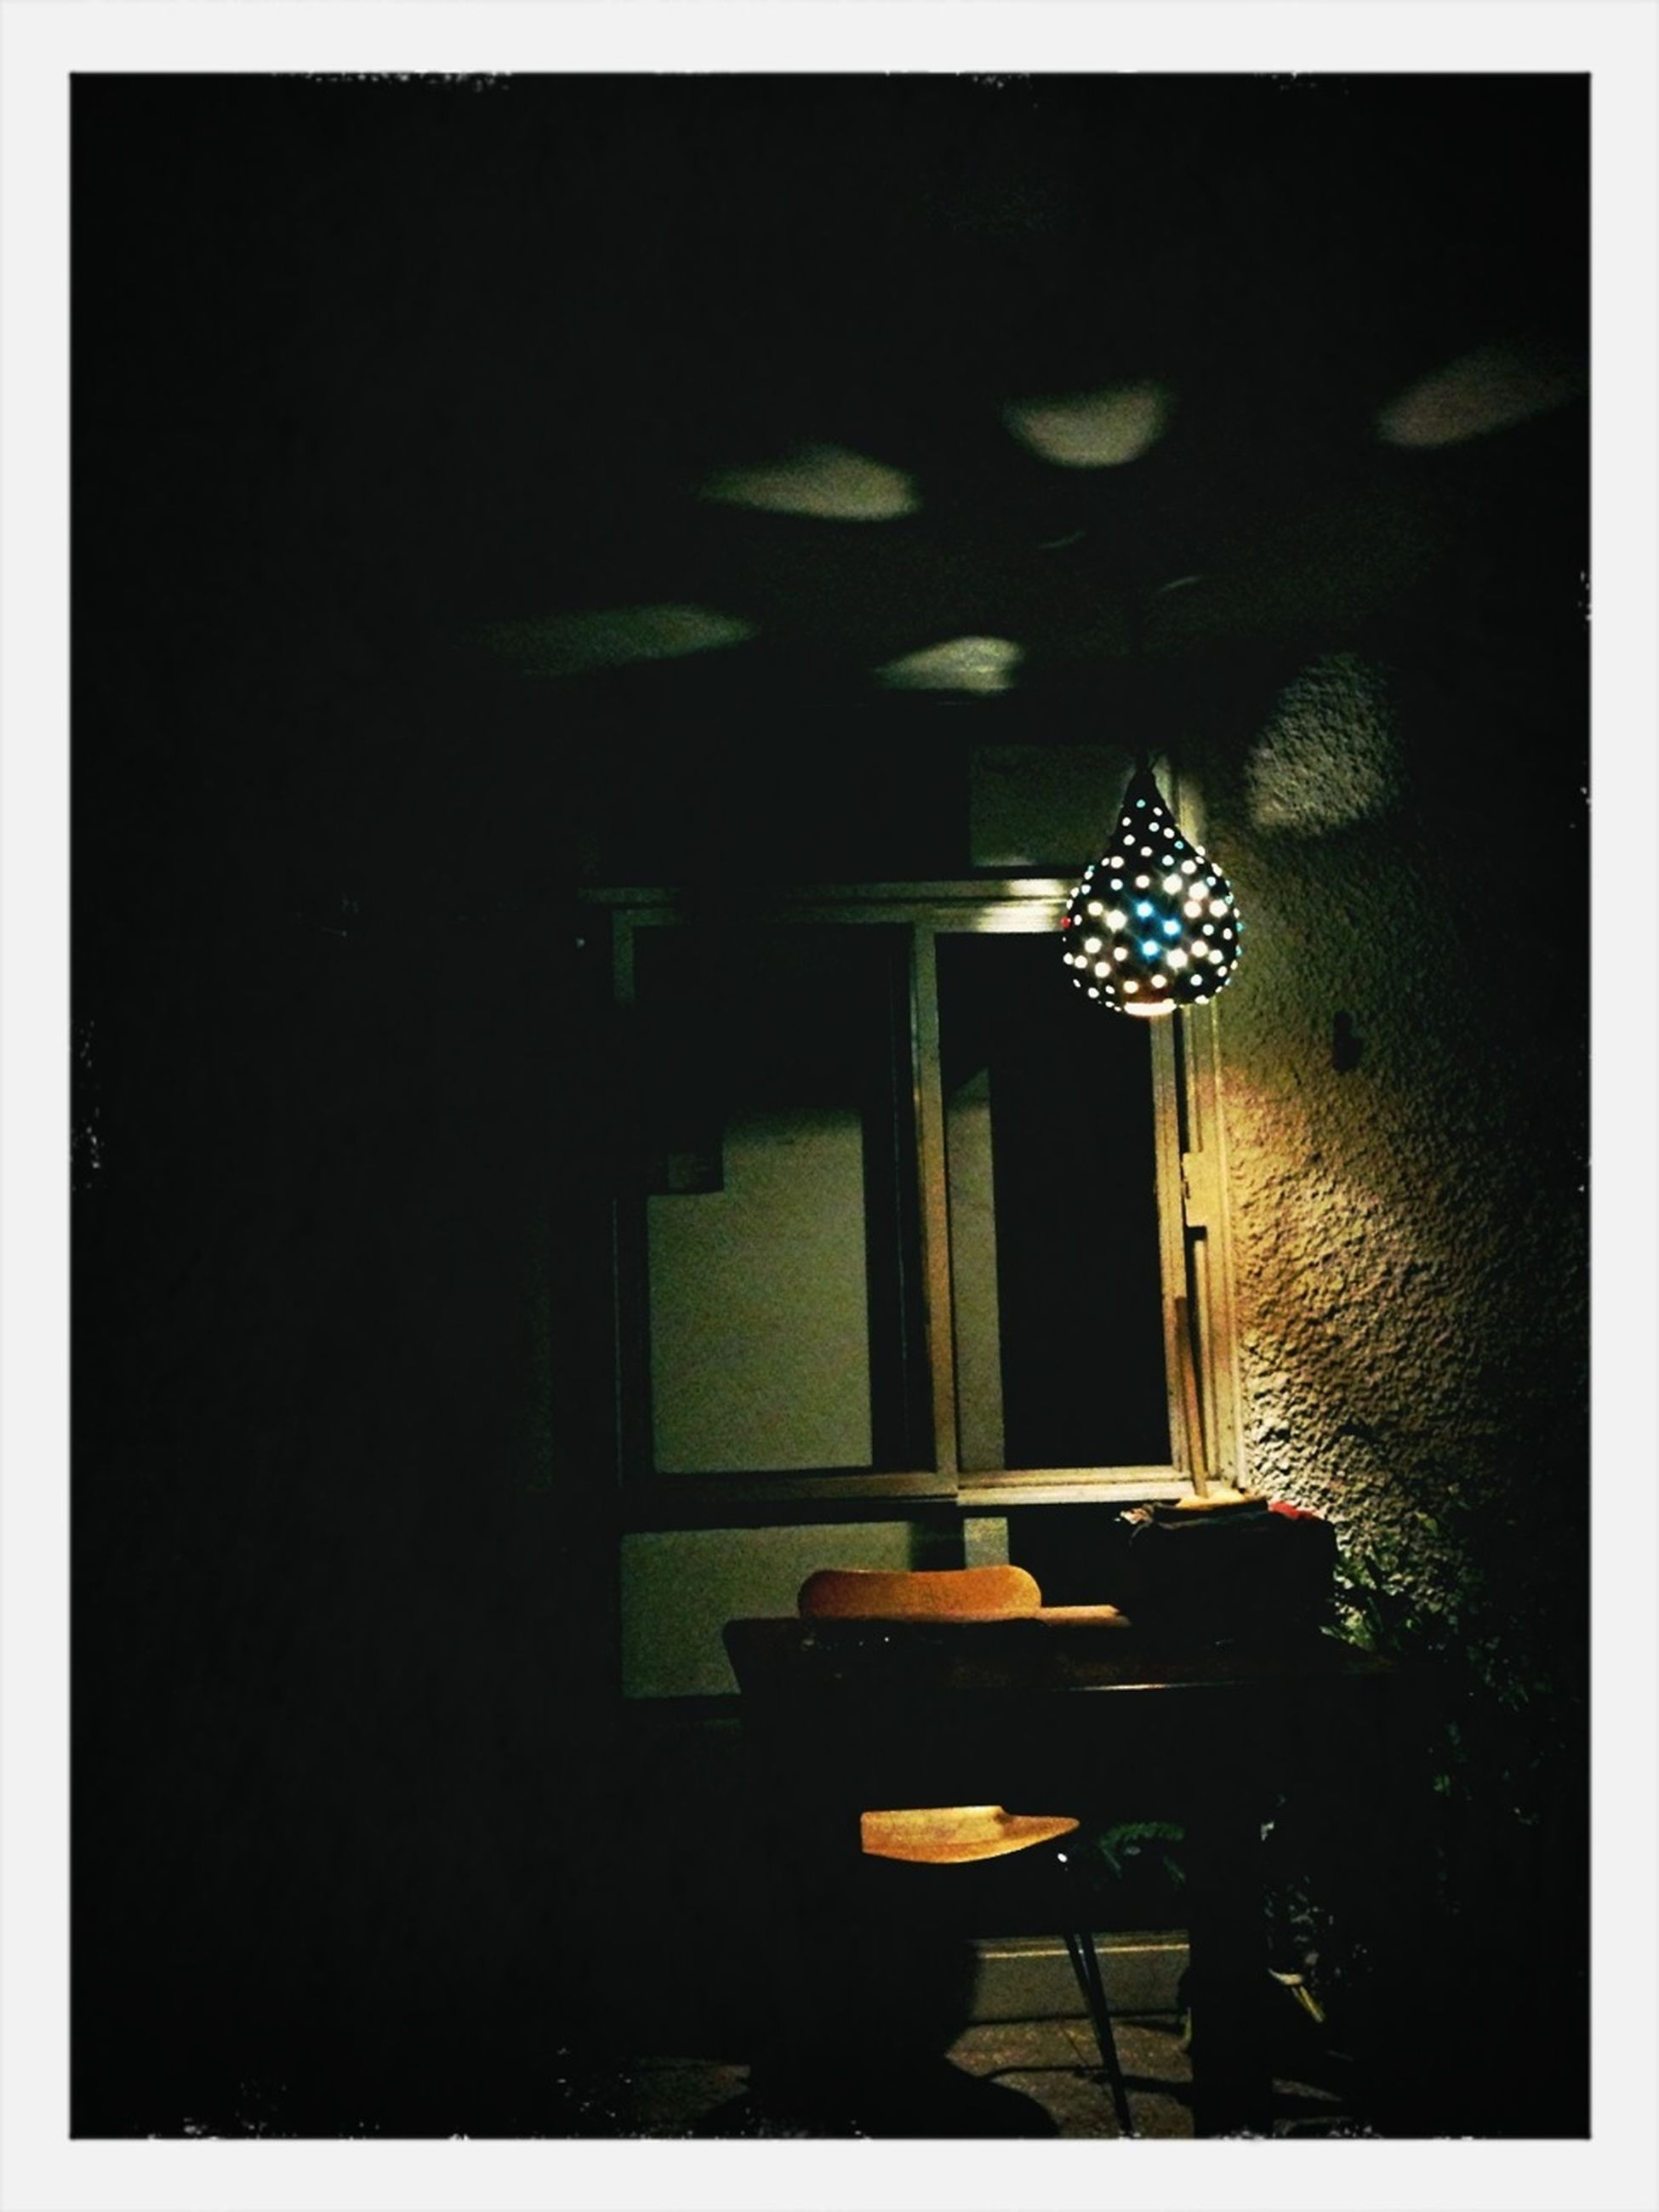 indoors, table, chair, absence, home interior, illuminated, empty, window, electric lamp, lighting equipment, house, domestic room, dark, architecture, home showcase interior, no people, auto post production filter, built structure, potted plant, furniture